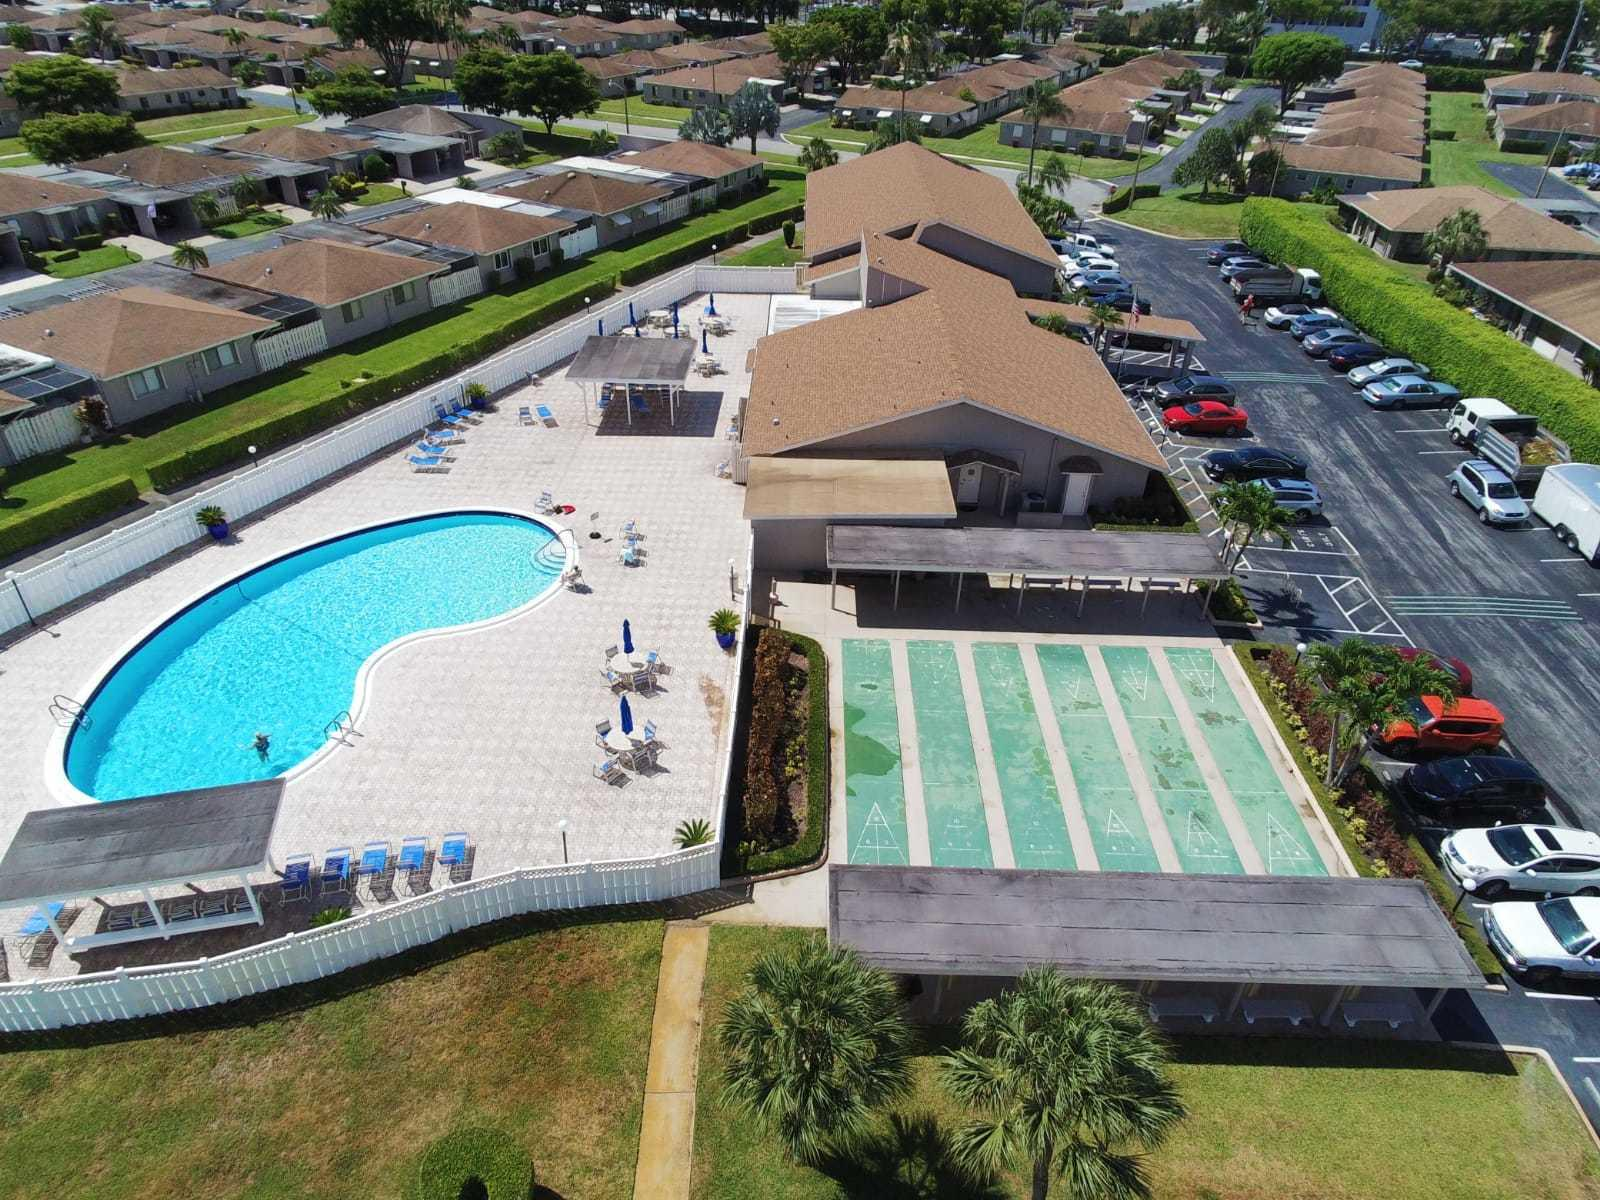 VILLAGES OF ORIOLE DELRAY BEACH REAL ESTATE